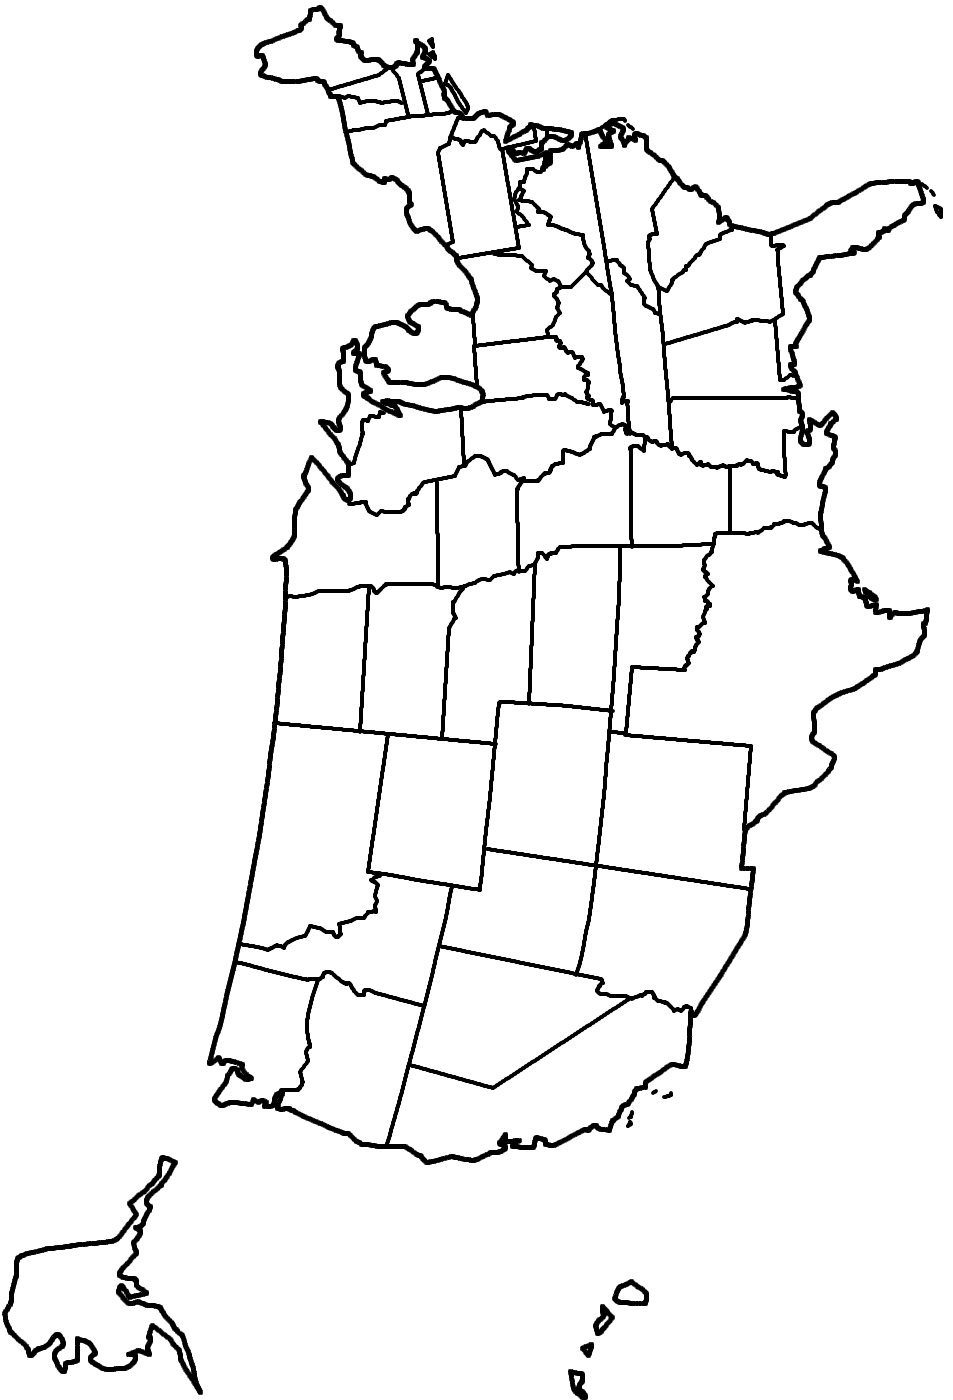 map of the united states coloring page usa coloring page labeled with states names from print united of page map states coloring the